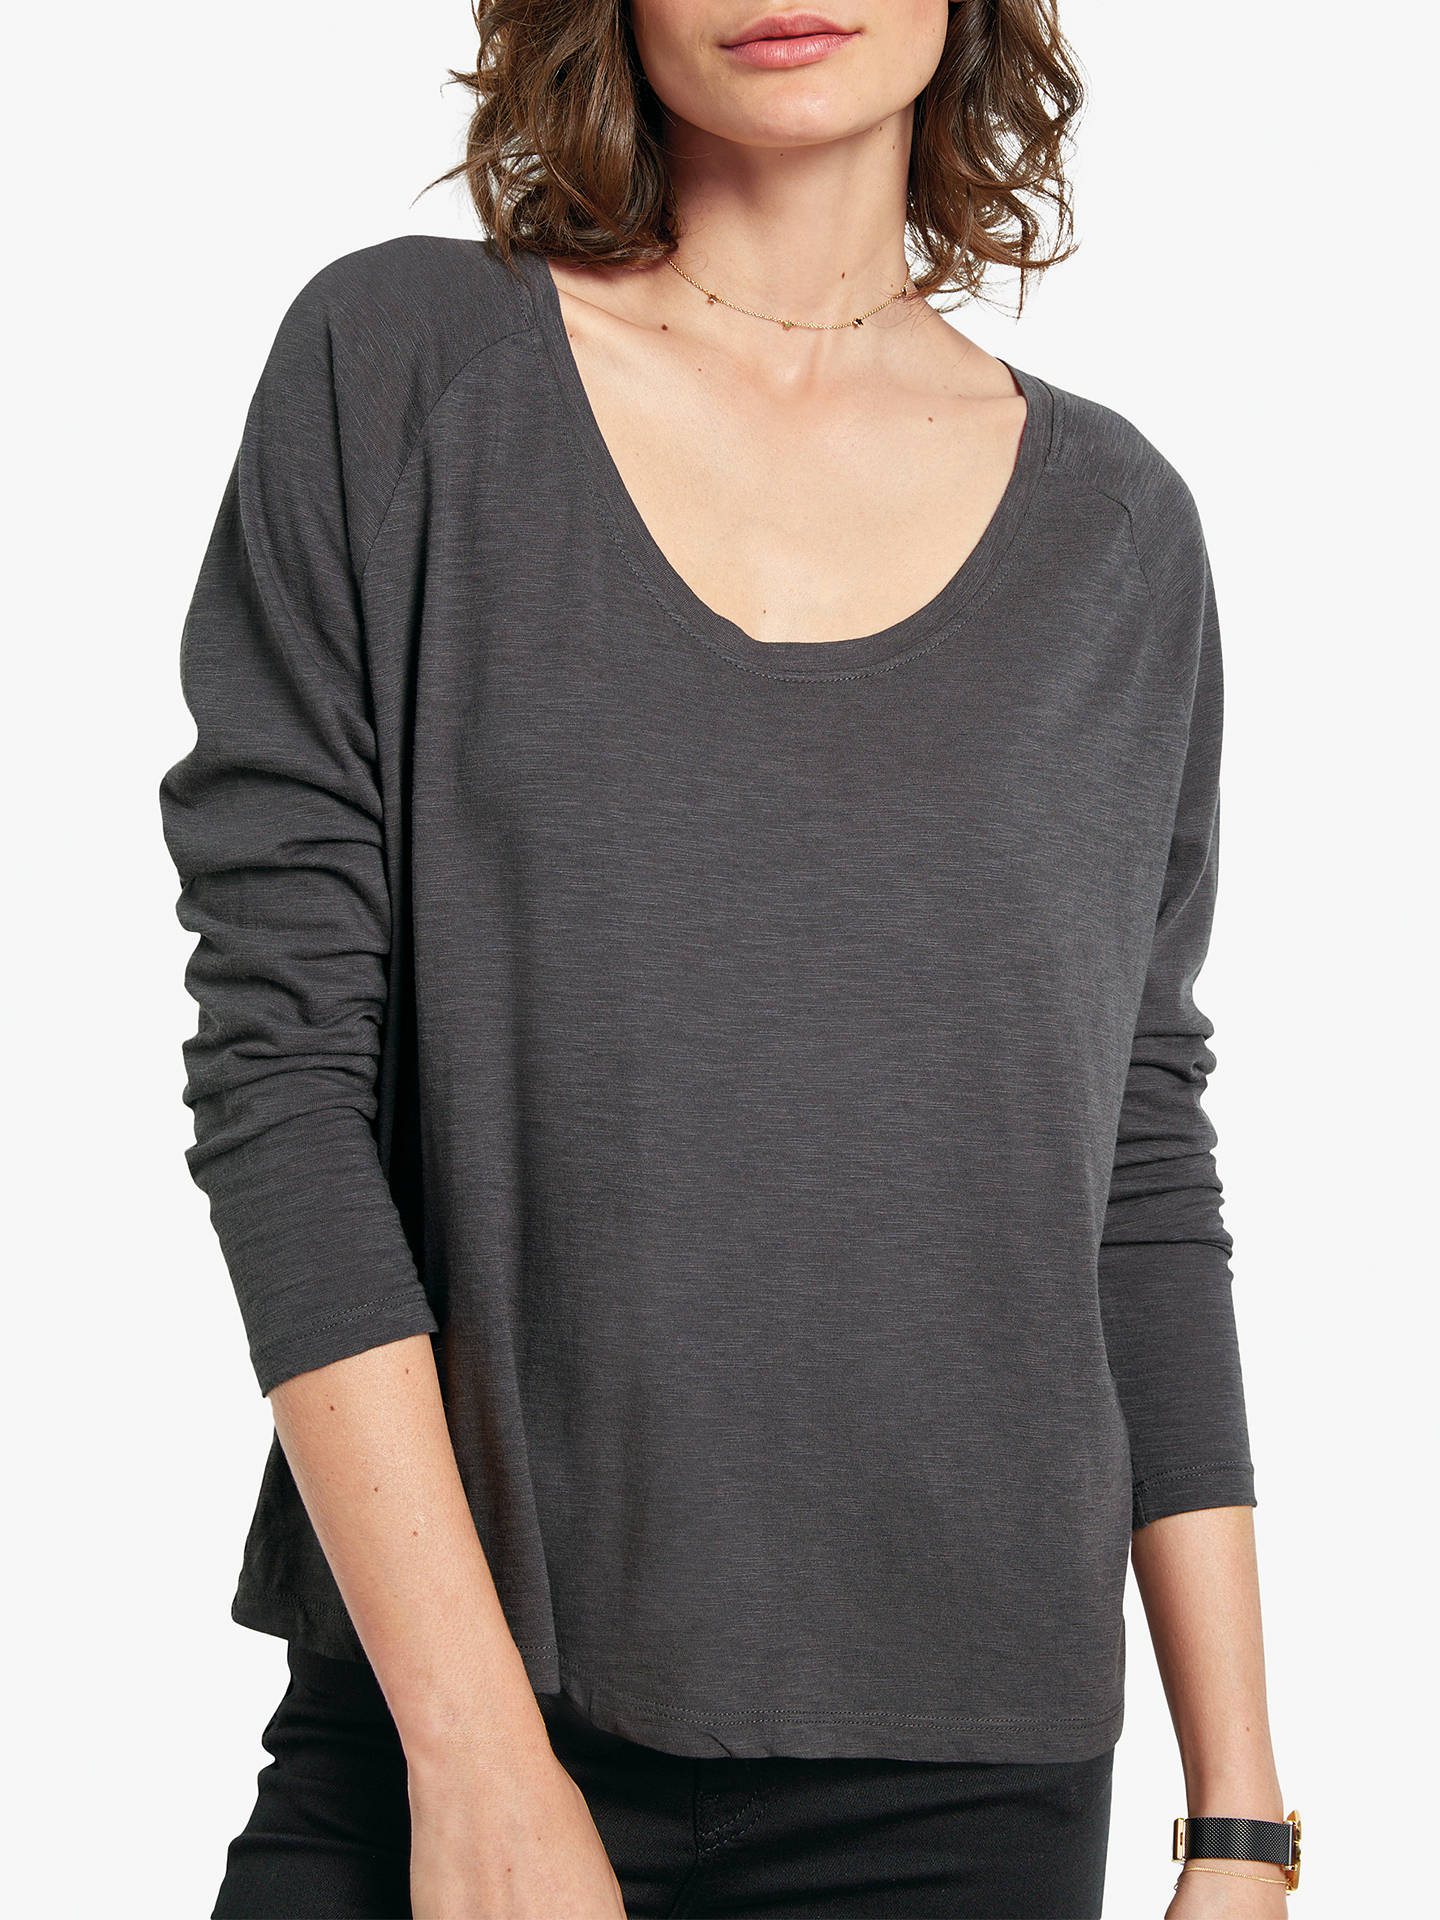 Buyhush Avalon Long Sleeve T-Shirt, Grey, L Online at johnlewis.com